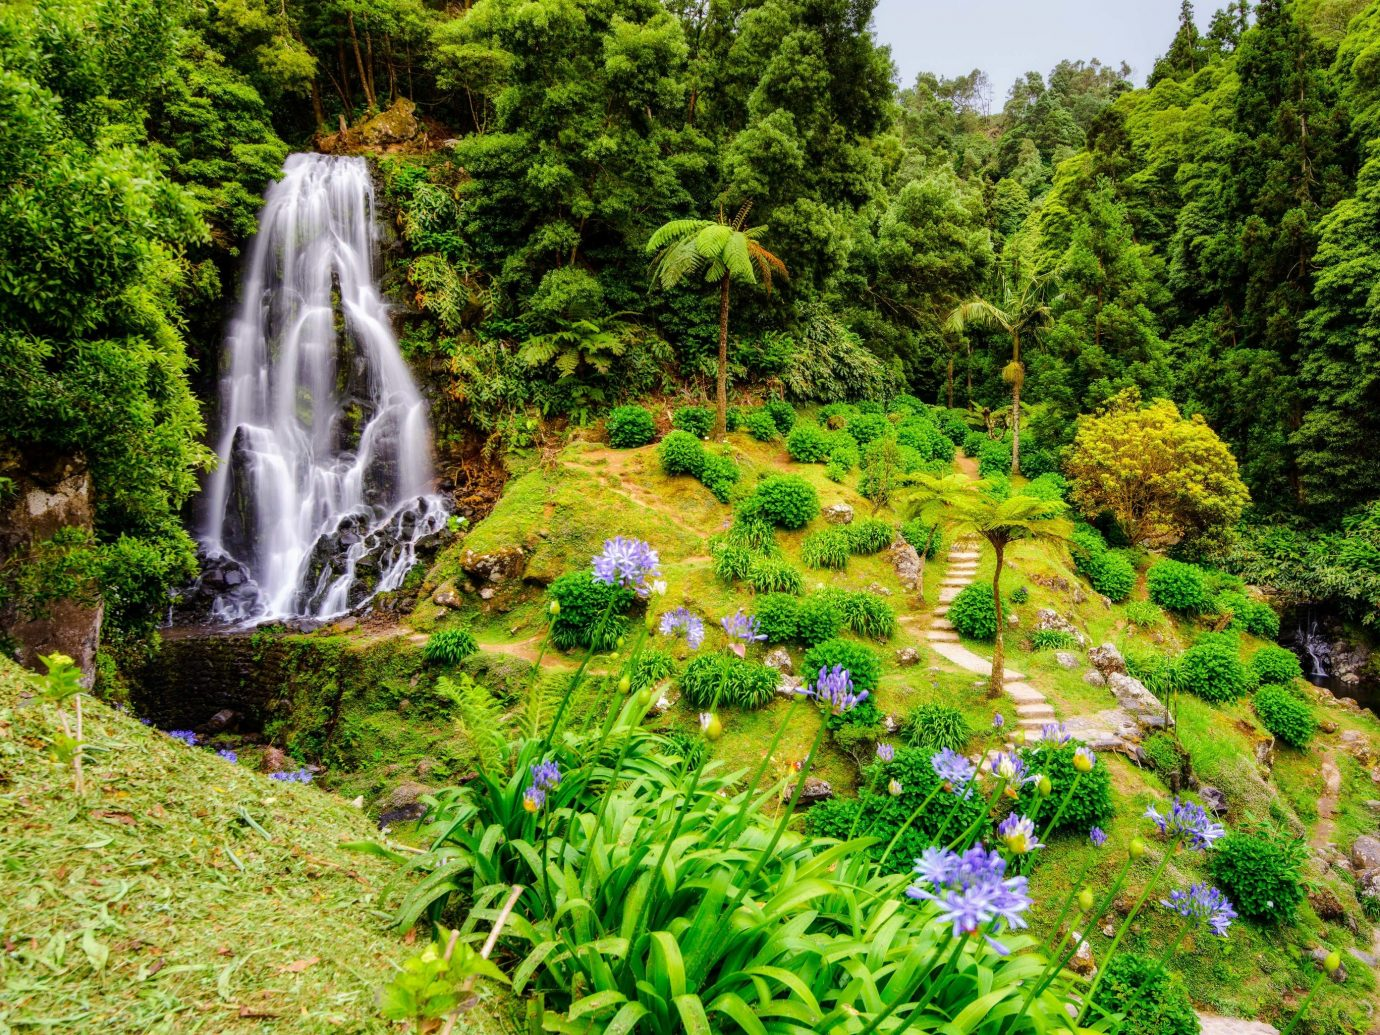 Trip Ideas tree Nature grass outdoor water vegetation Waterfall green body of water nature reserve botanical garden flora watercourse leaf water feature plant Garden landscape biome rainforest stream old growth forest water resources moss Forest non vascular land plant Jungle lush